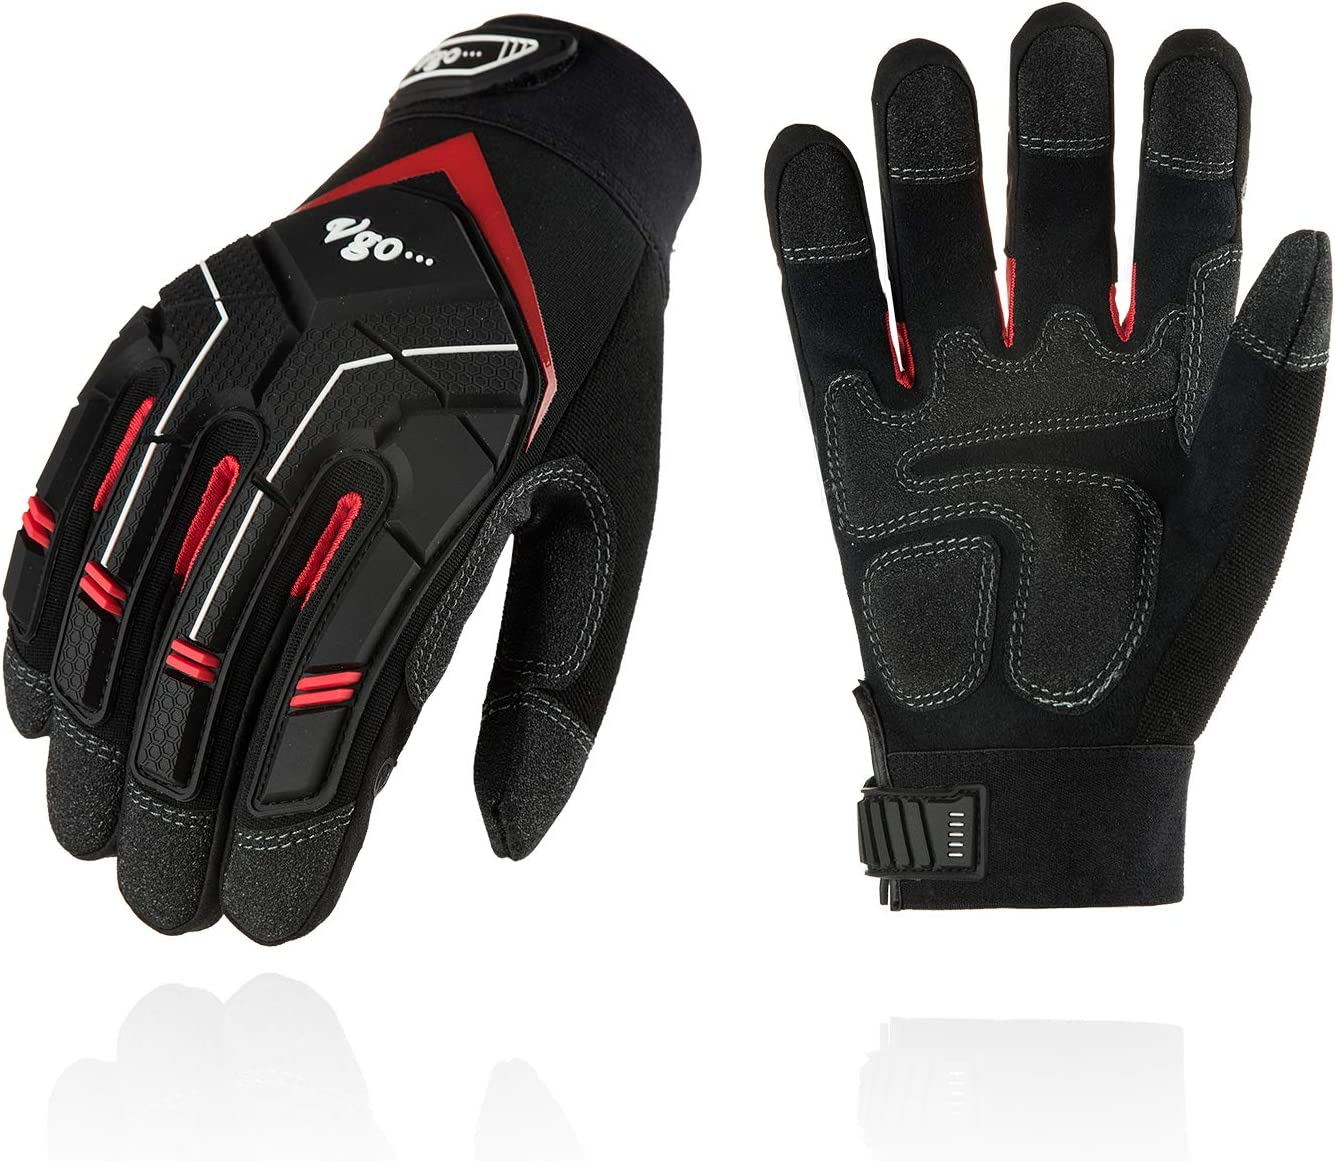 Vgo 1Pair//3Pairs Synthetic Leather Work Gloves Heavy Duty Mechanic Gloves SL9722